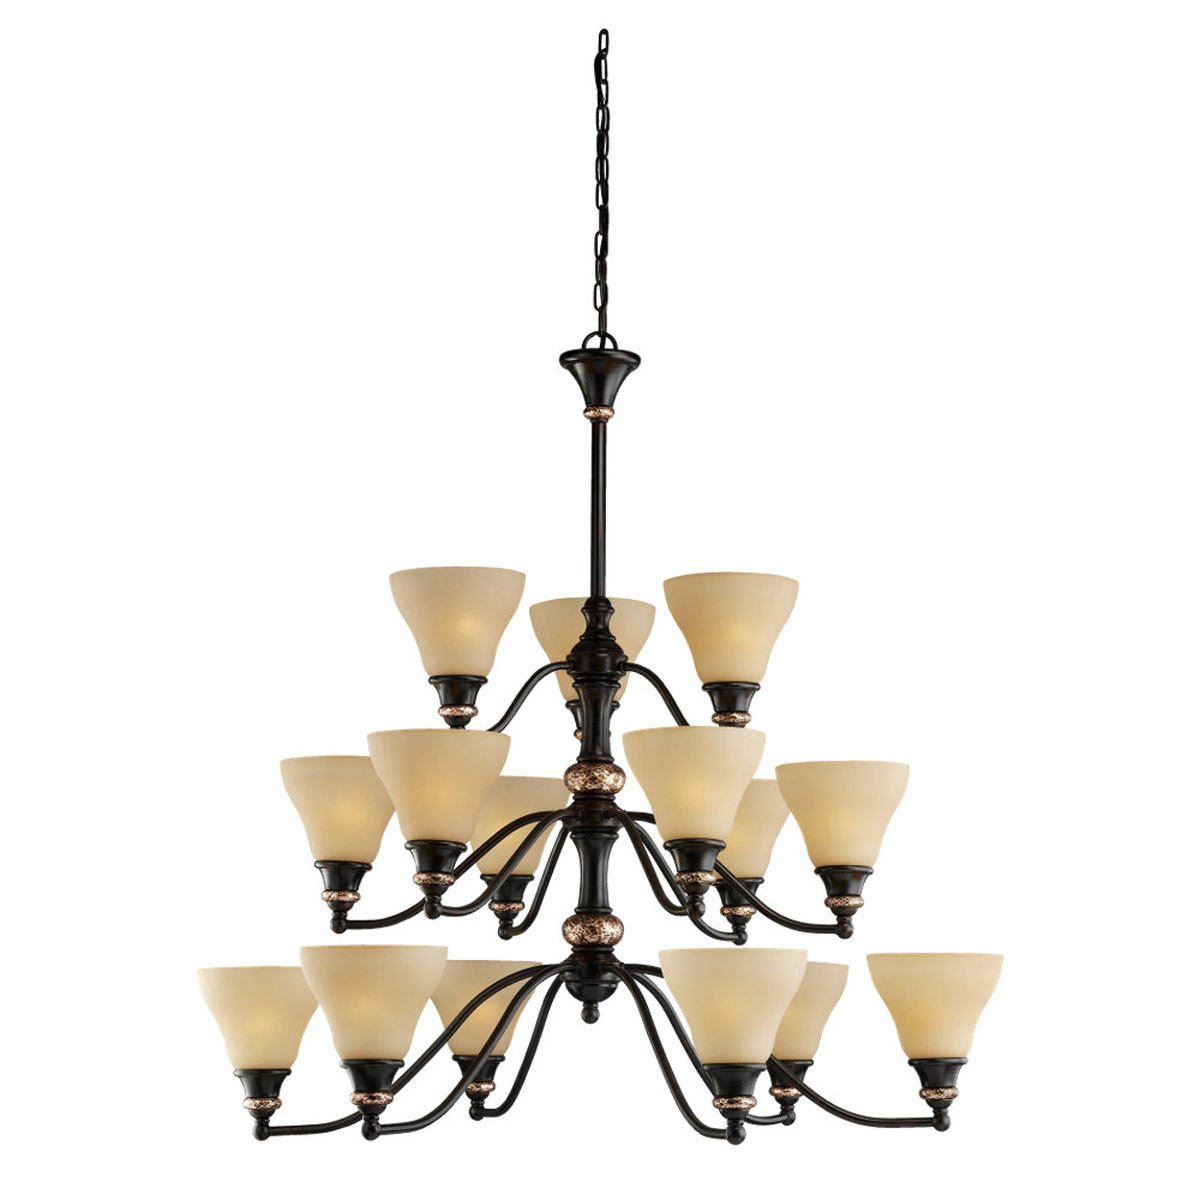 Sea Gull Lighting Brixham 15 Light Chandelier in Rustic Bronze with Hammered Copper Inlay 31594-844 photo